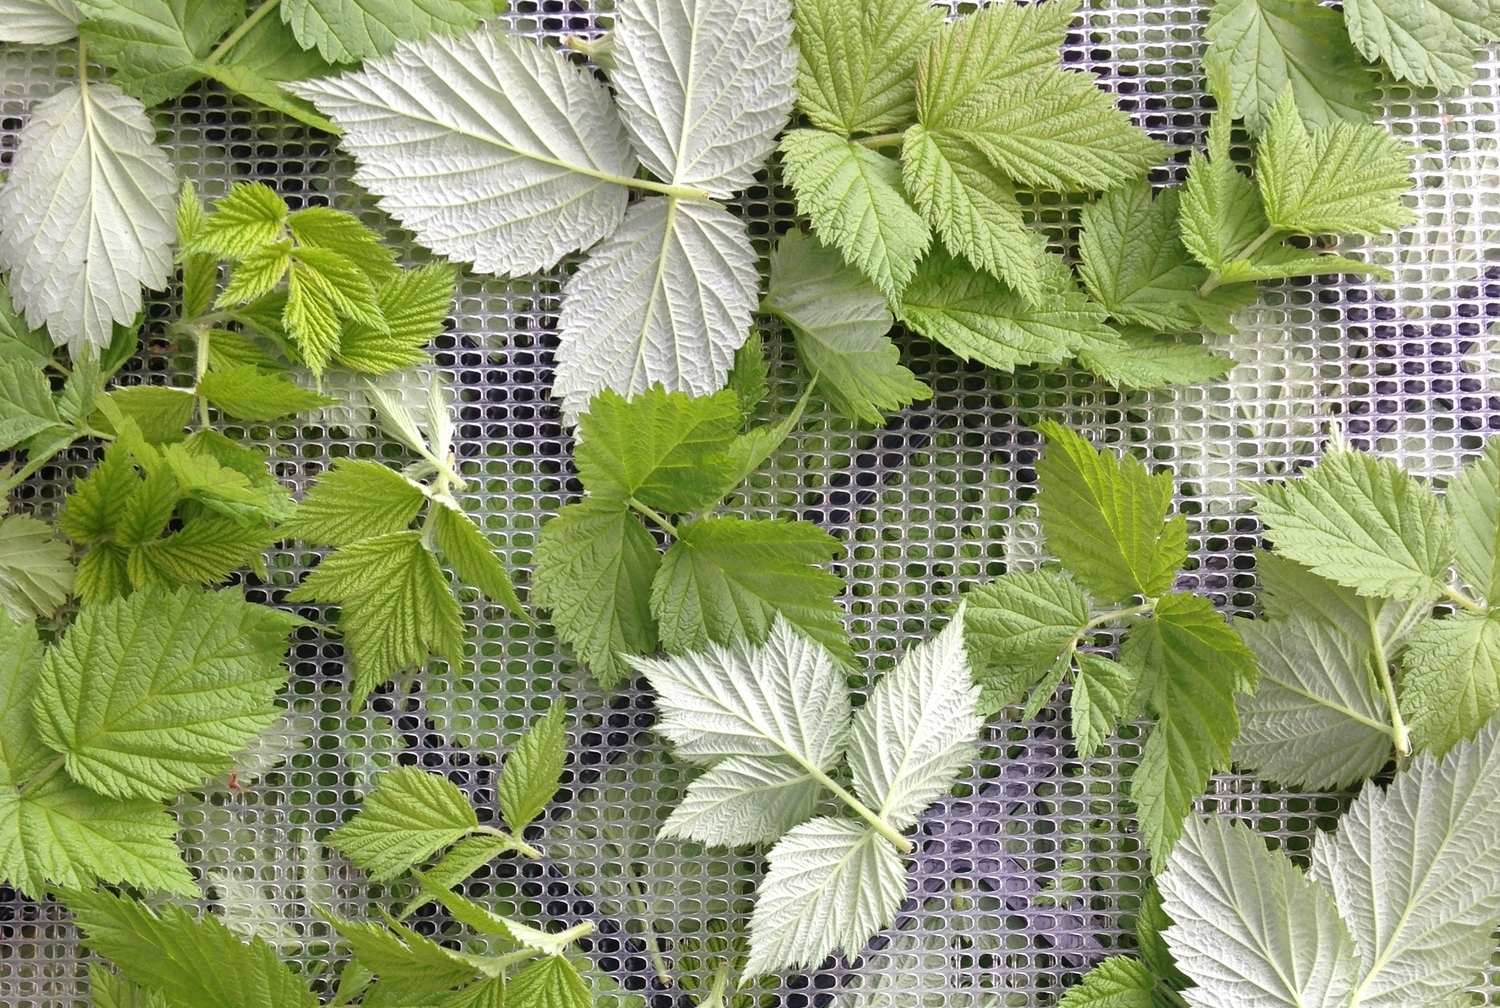 Single layer of raspberry leaves on a dehydrator tray.